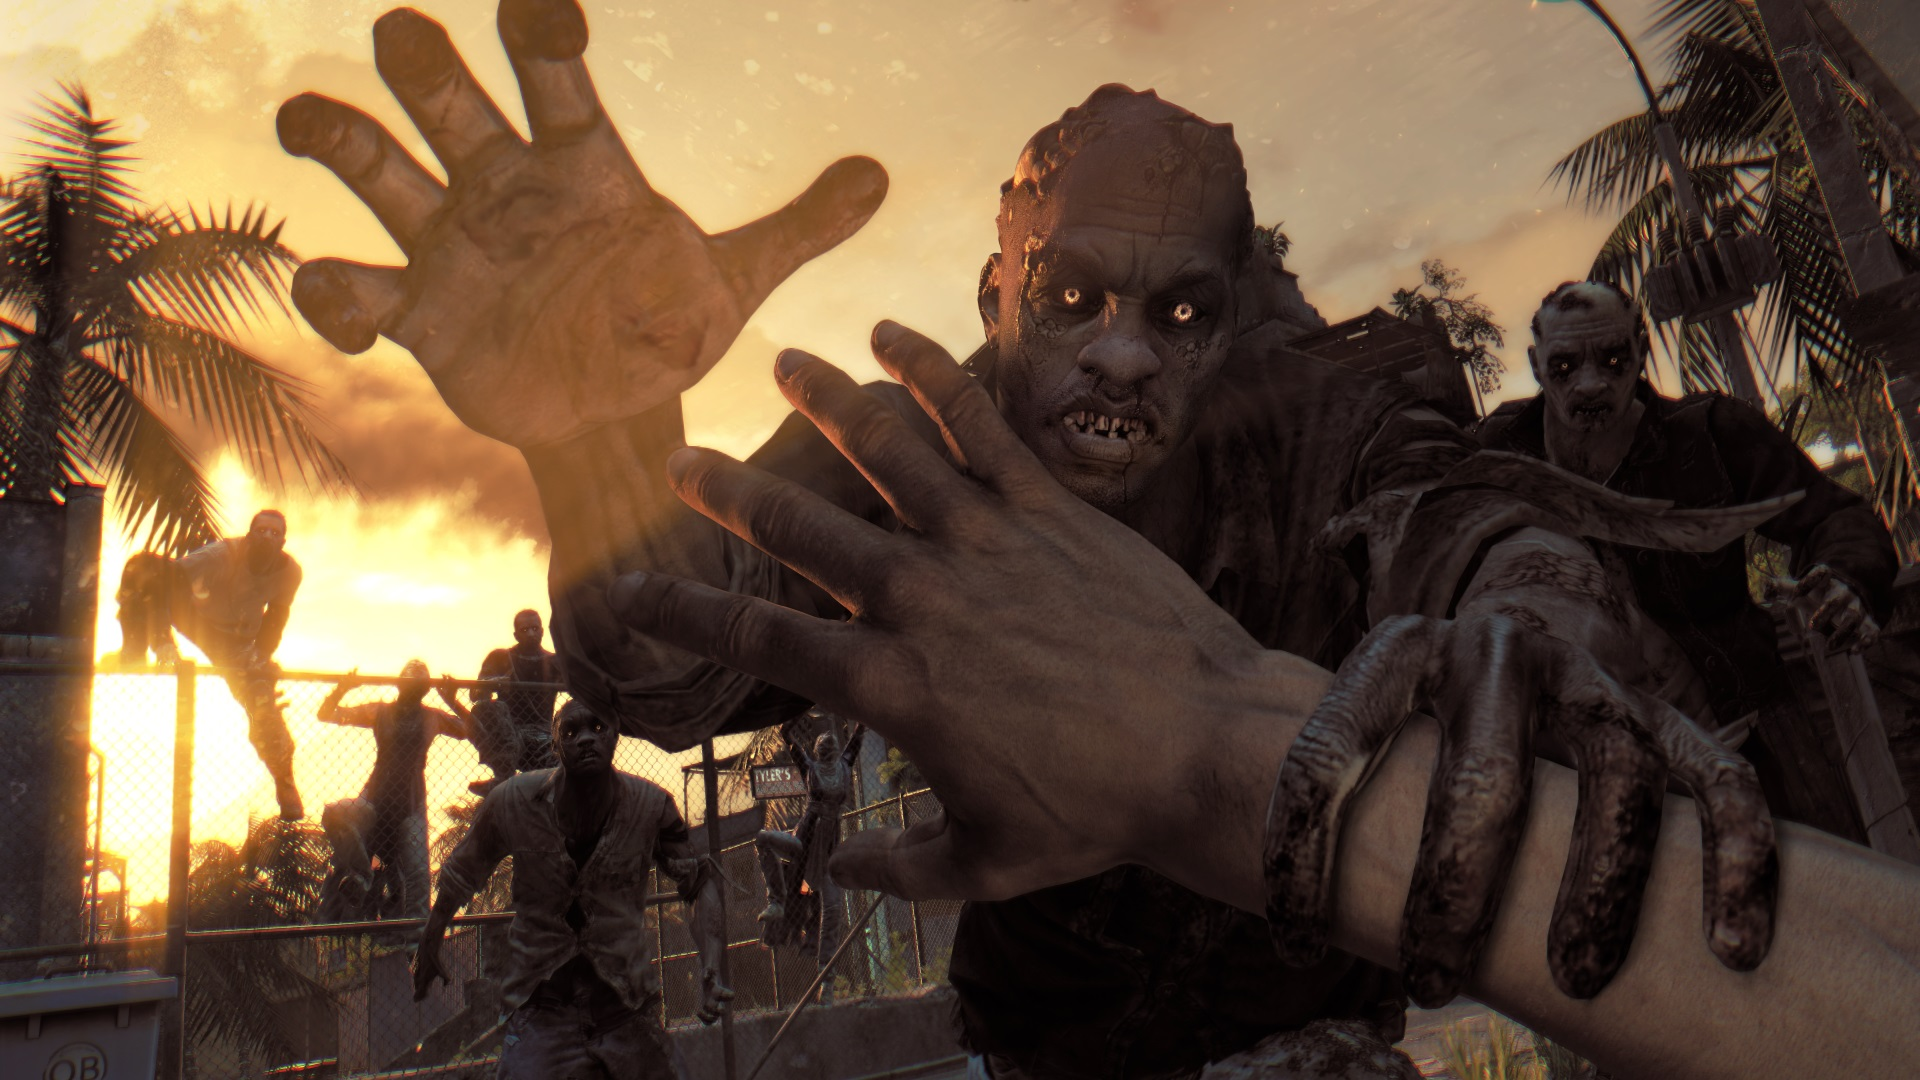 Dying Light: The Following - Enhanced Edition [v 1.11.1 + DLCs] (2015) PC | Repack от R.G. Catalyst - Скриншот 2